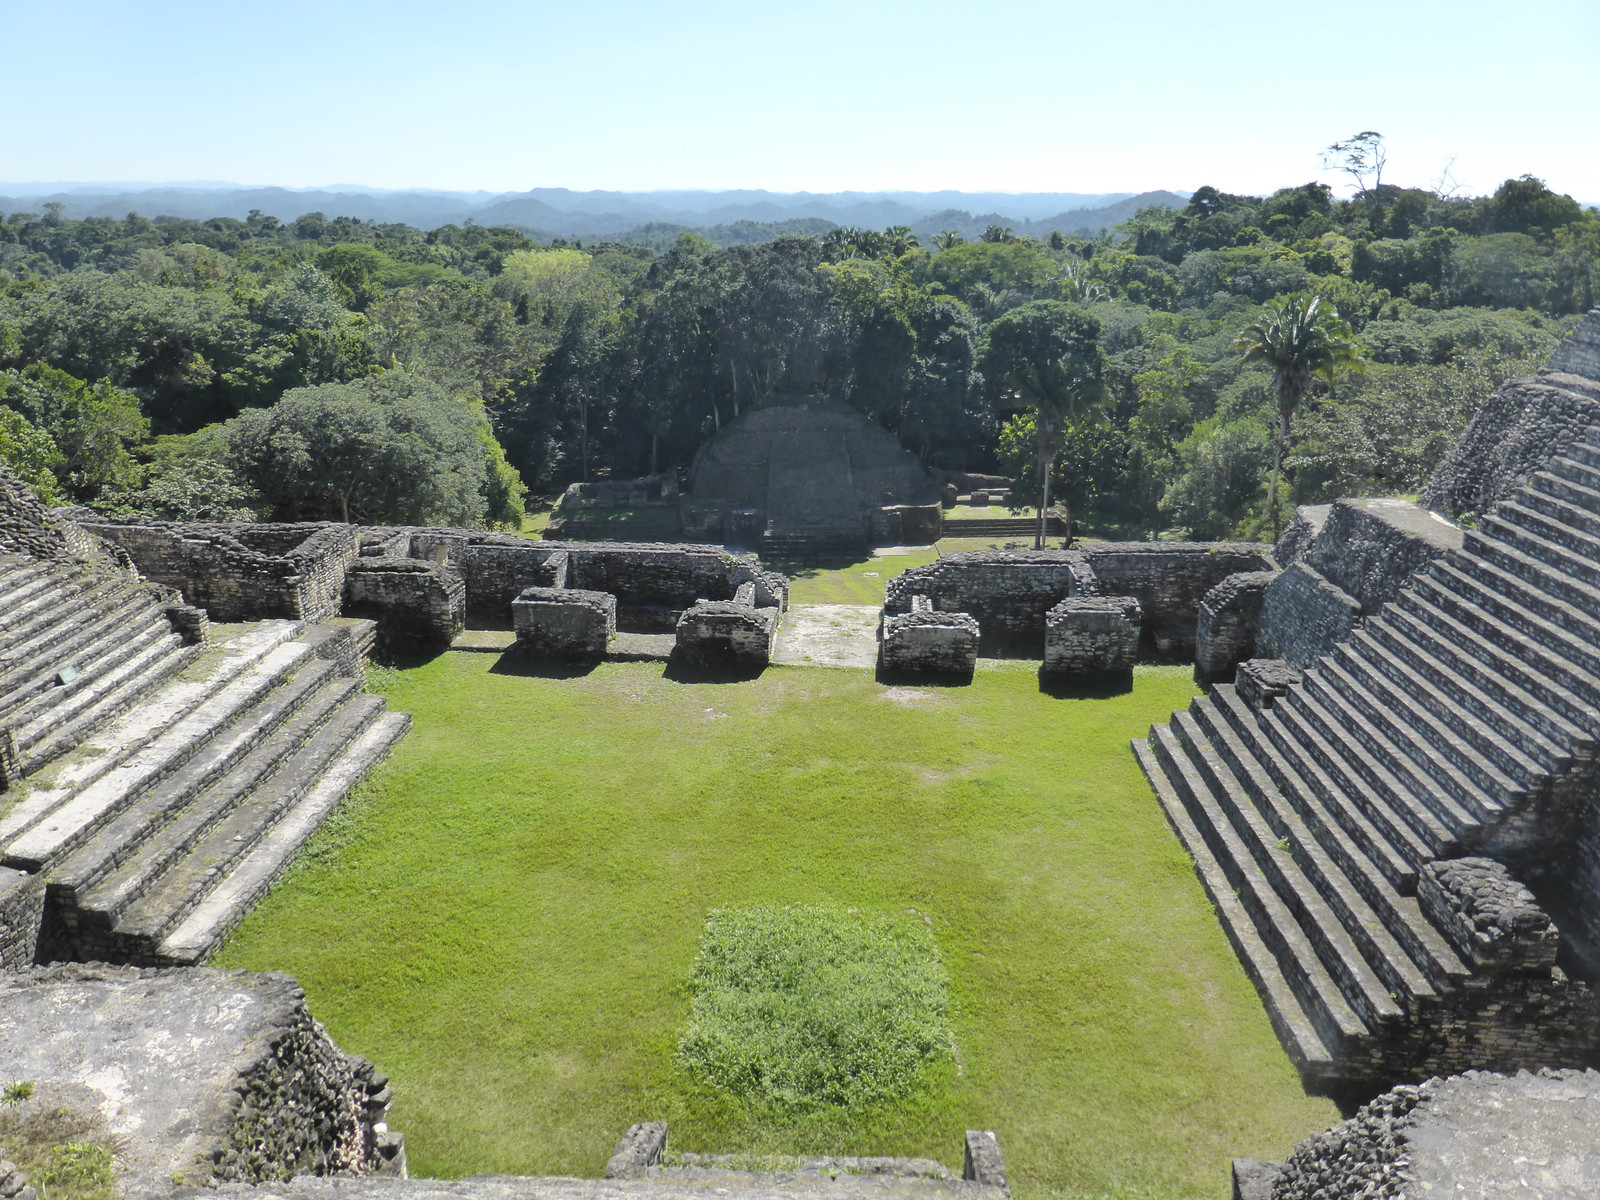 The view south from the top of the main pyramid